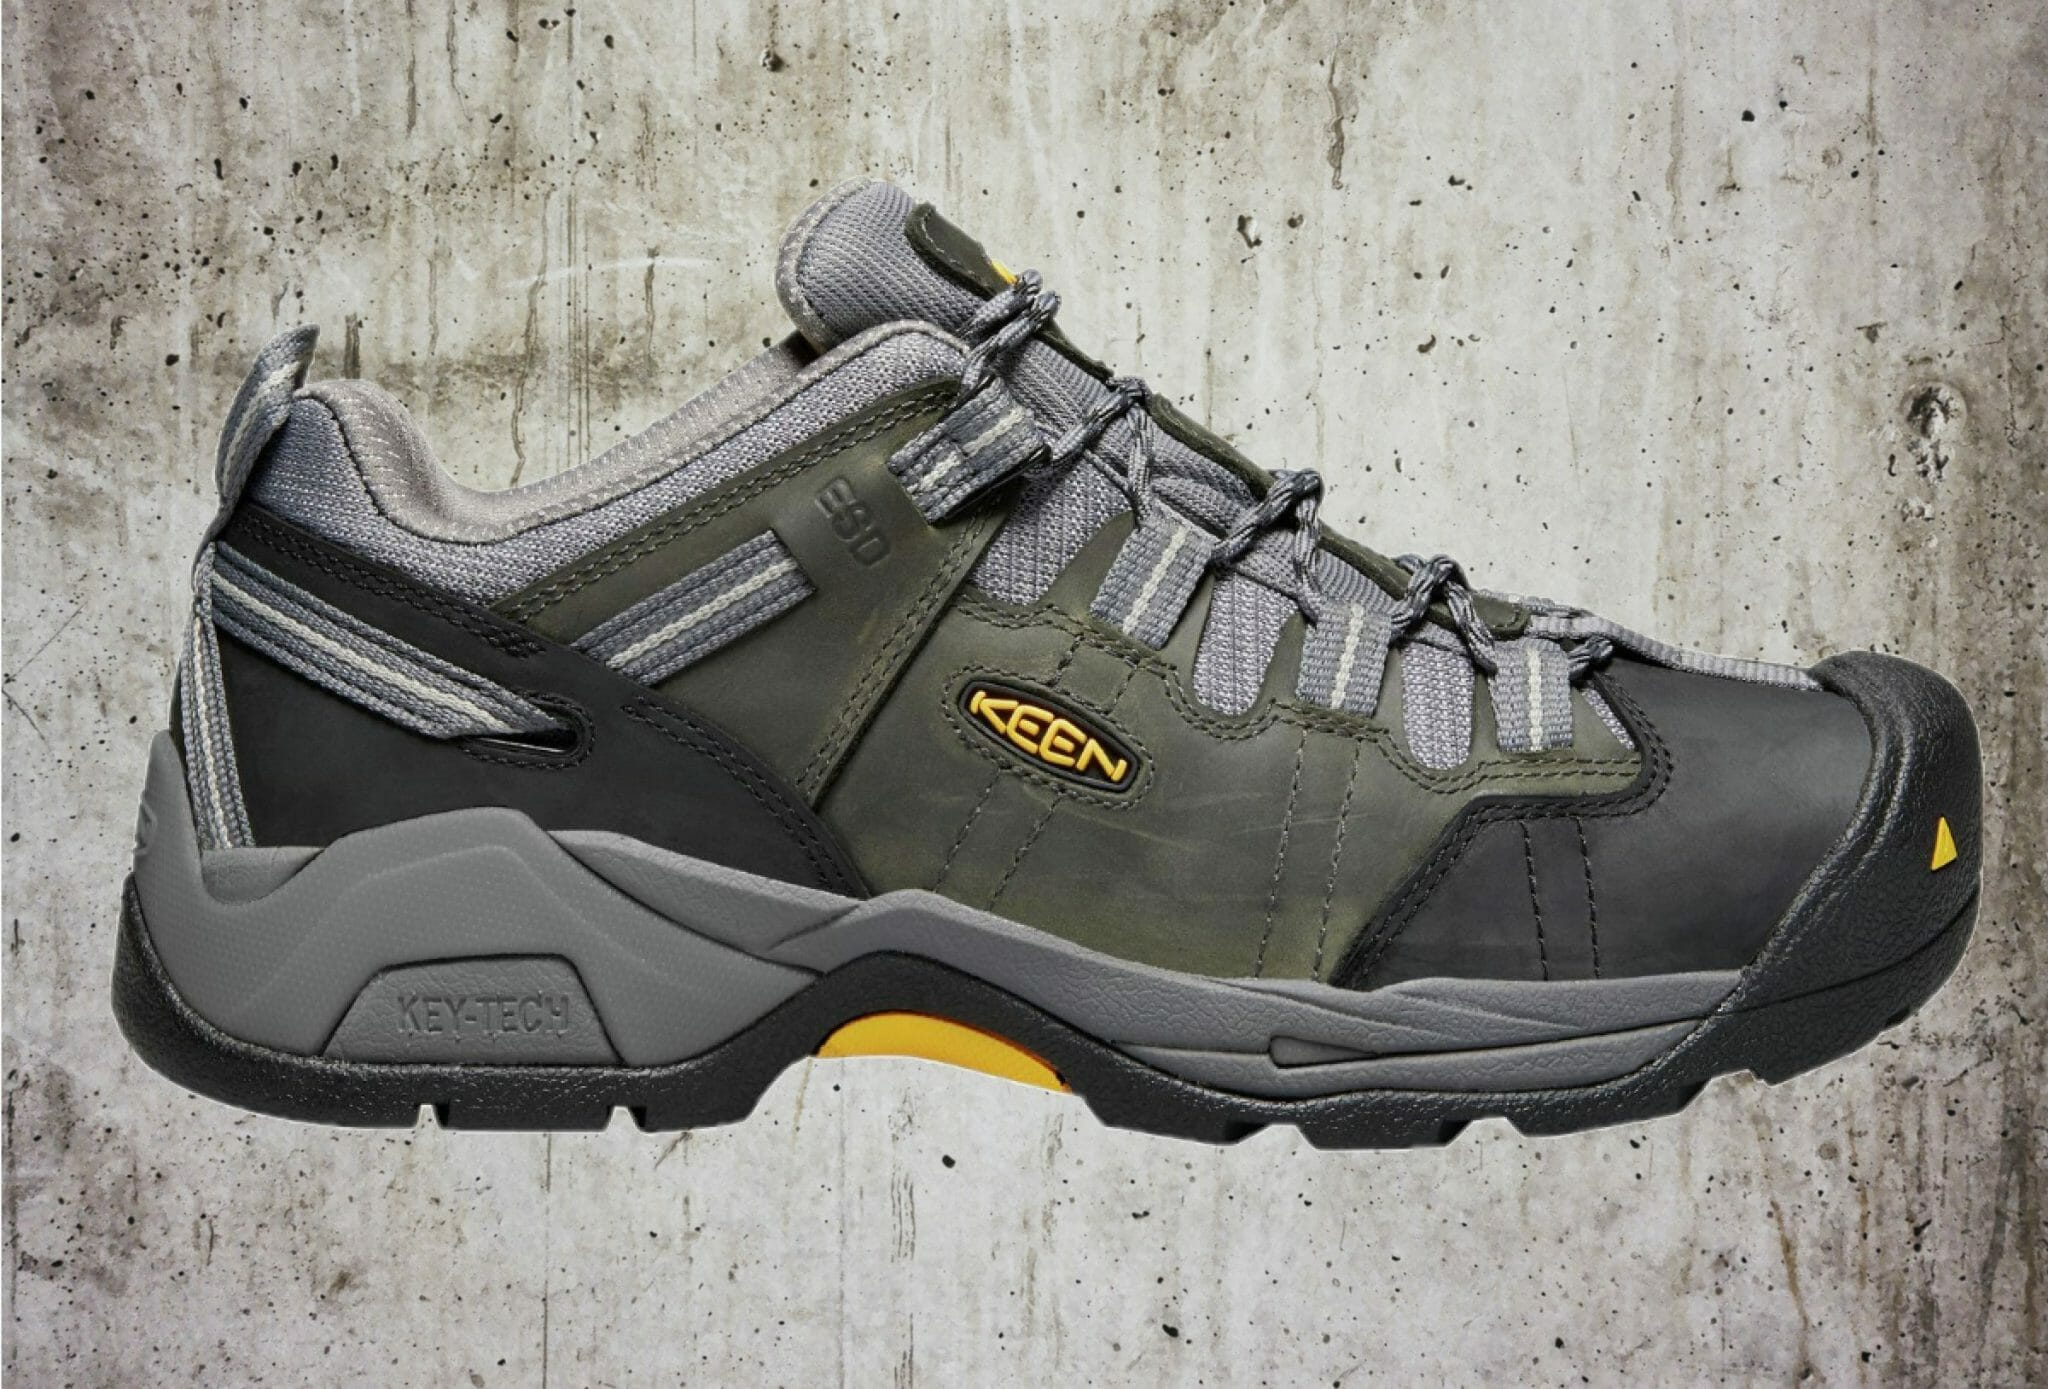 Profile view of the Keen Utility Detroit XT Low top work shoe on backdrop of concrete floor